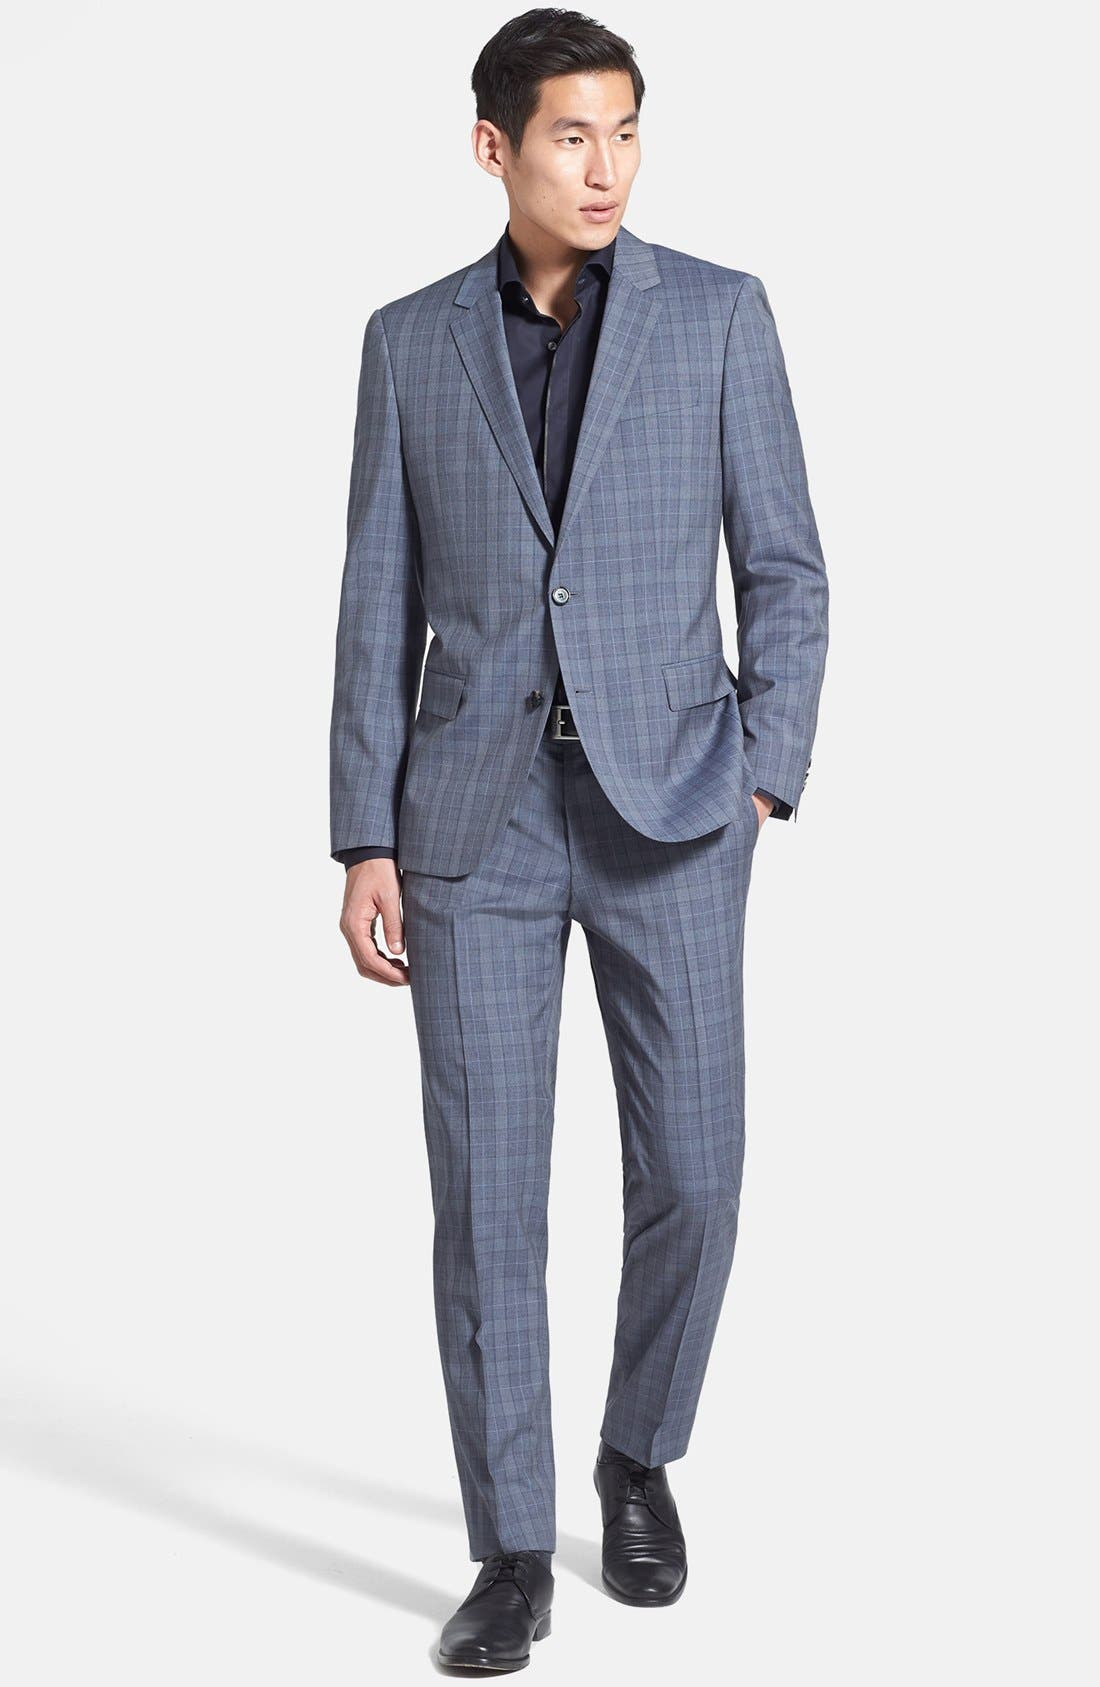 Main Image - BOSS HUGO BOSS Suit & Dress Shirt